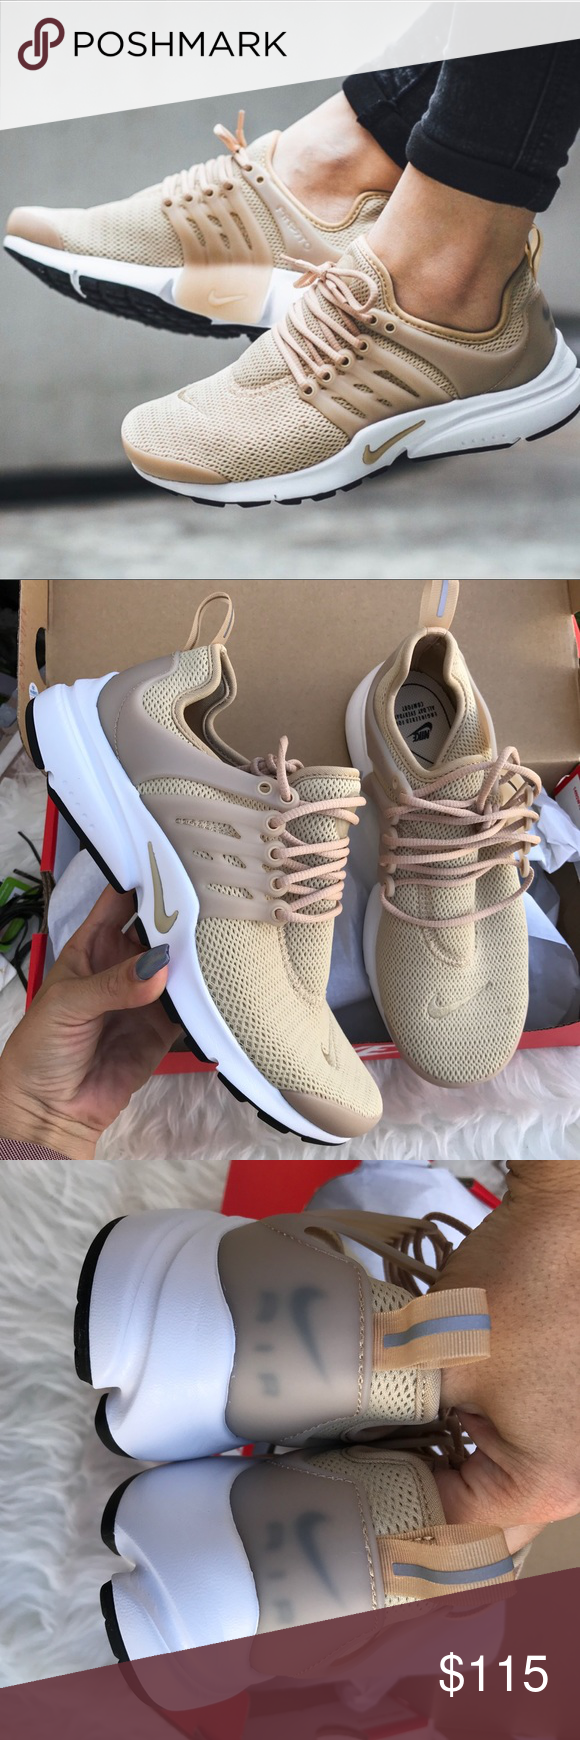 huge selection of 478df 97358 NIKE AIR PRESTO LINEN LIMITED EDITION COLOR Sz 7 NIKE AIR PRESTO LINEN COLOR  SOLD OUT Sz 7 new 100% authentic! Itemcloset seize Nike Shoes